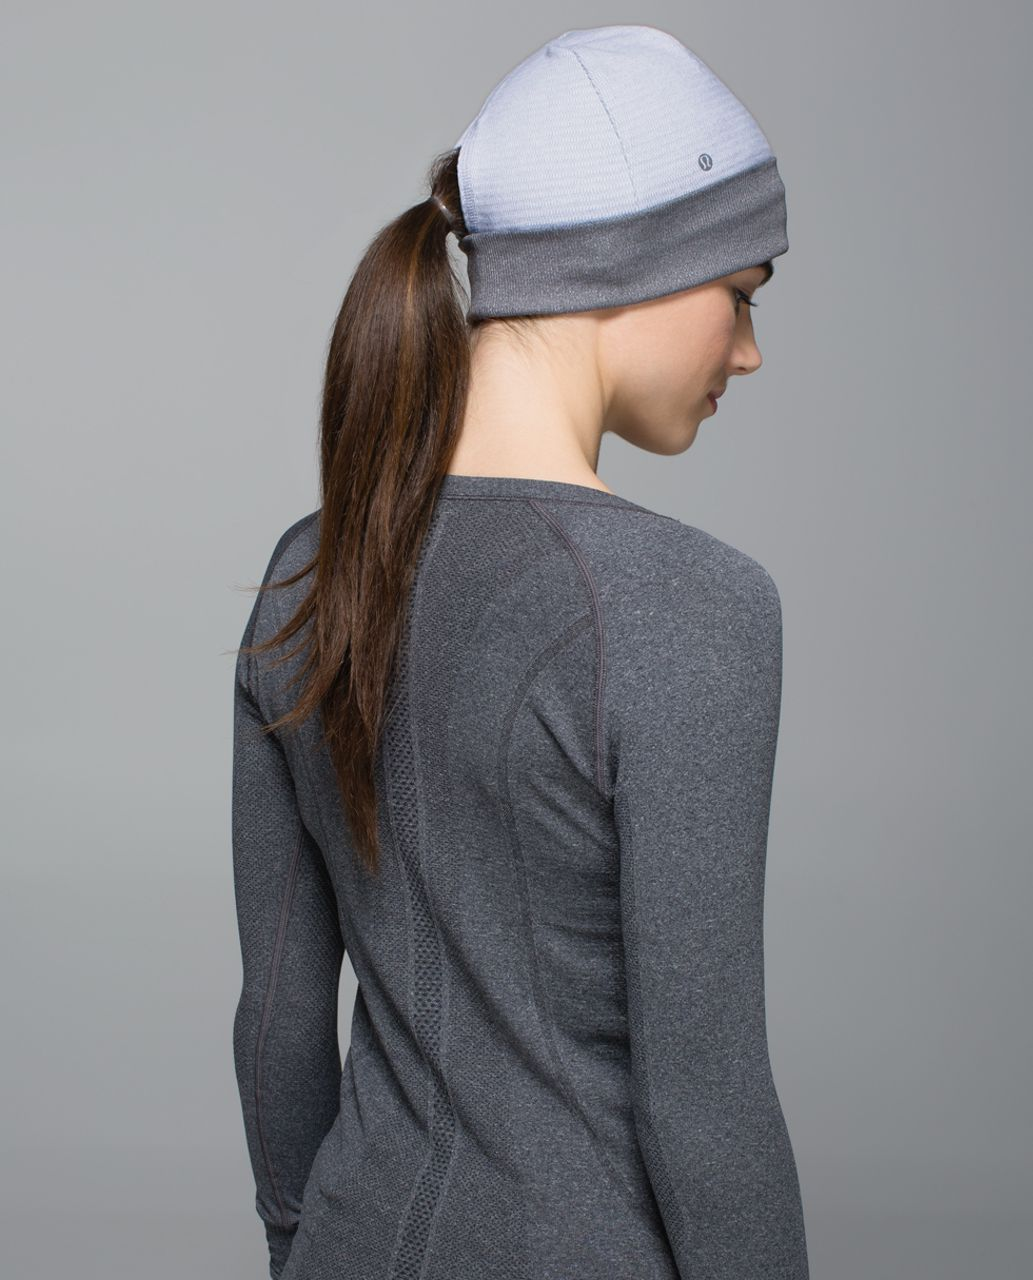 Lululemon Run With Me Toque - Mini Check Pique White Heathered Silver Fox